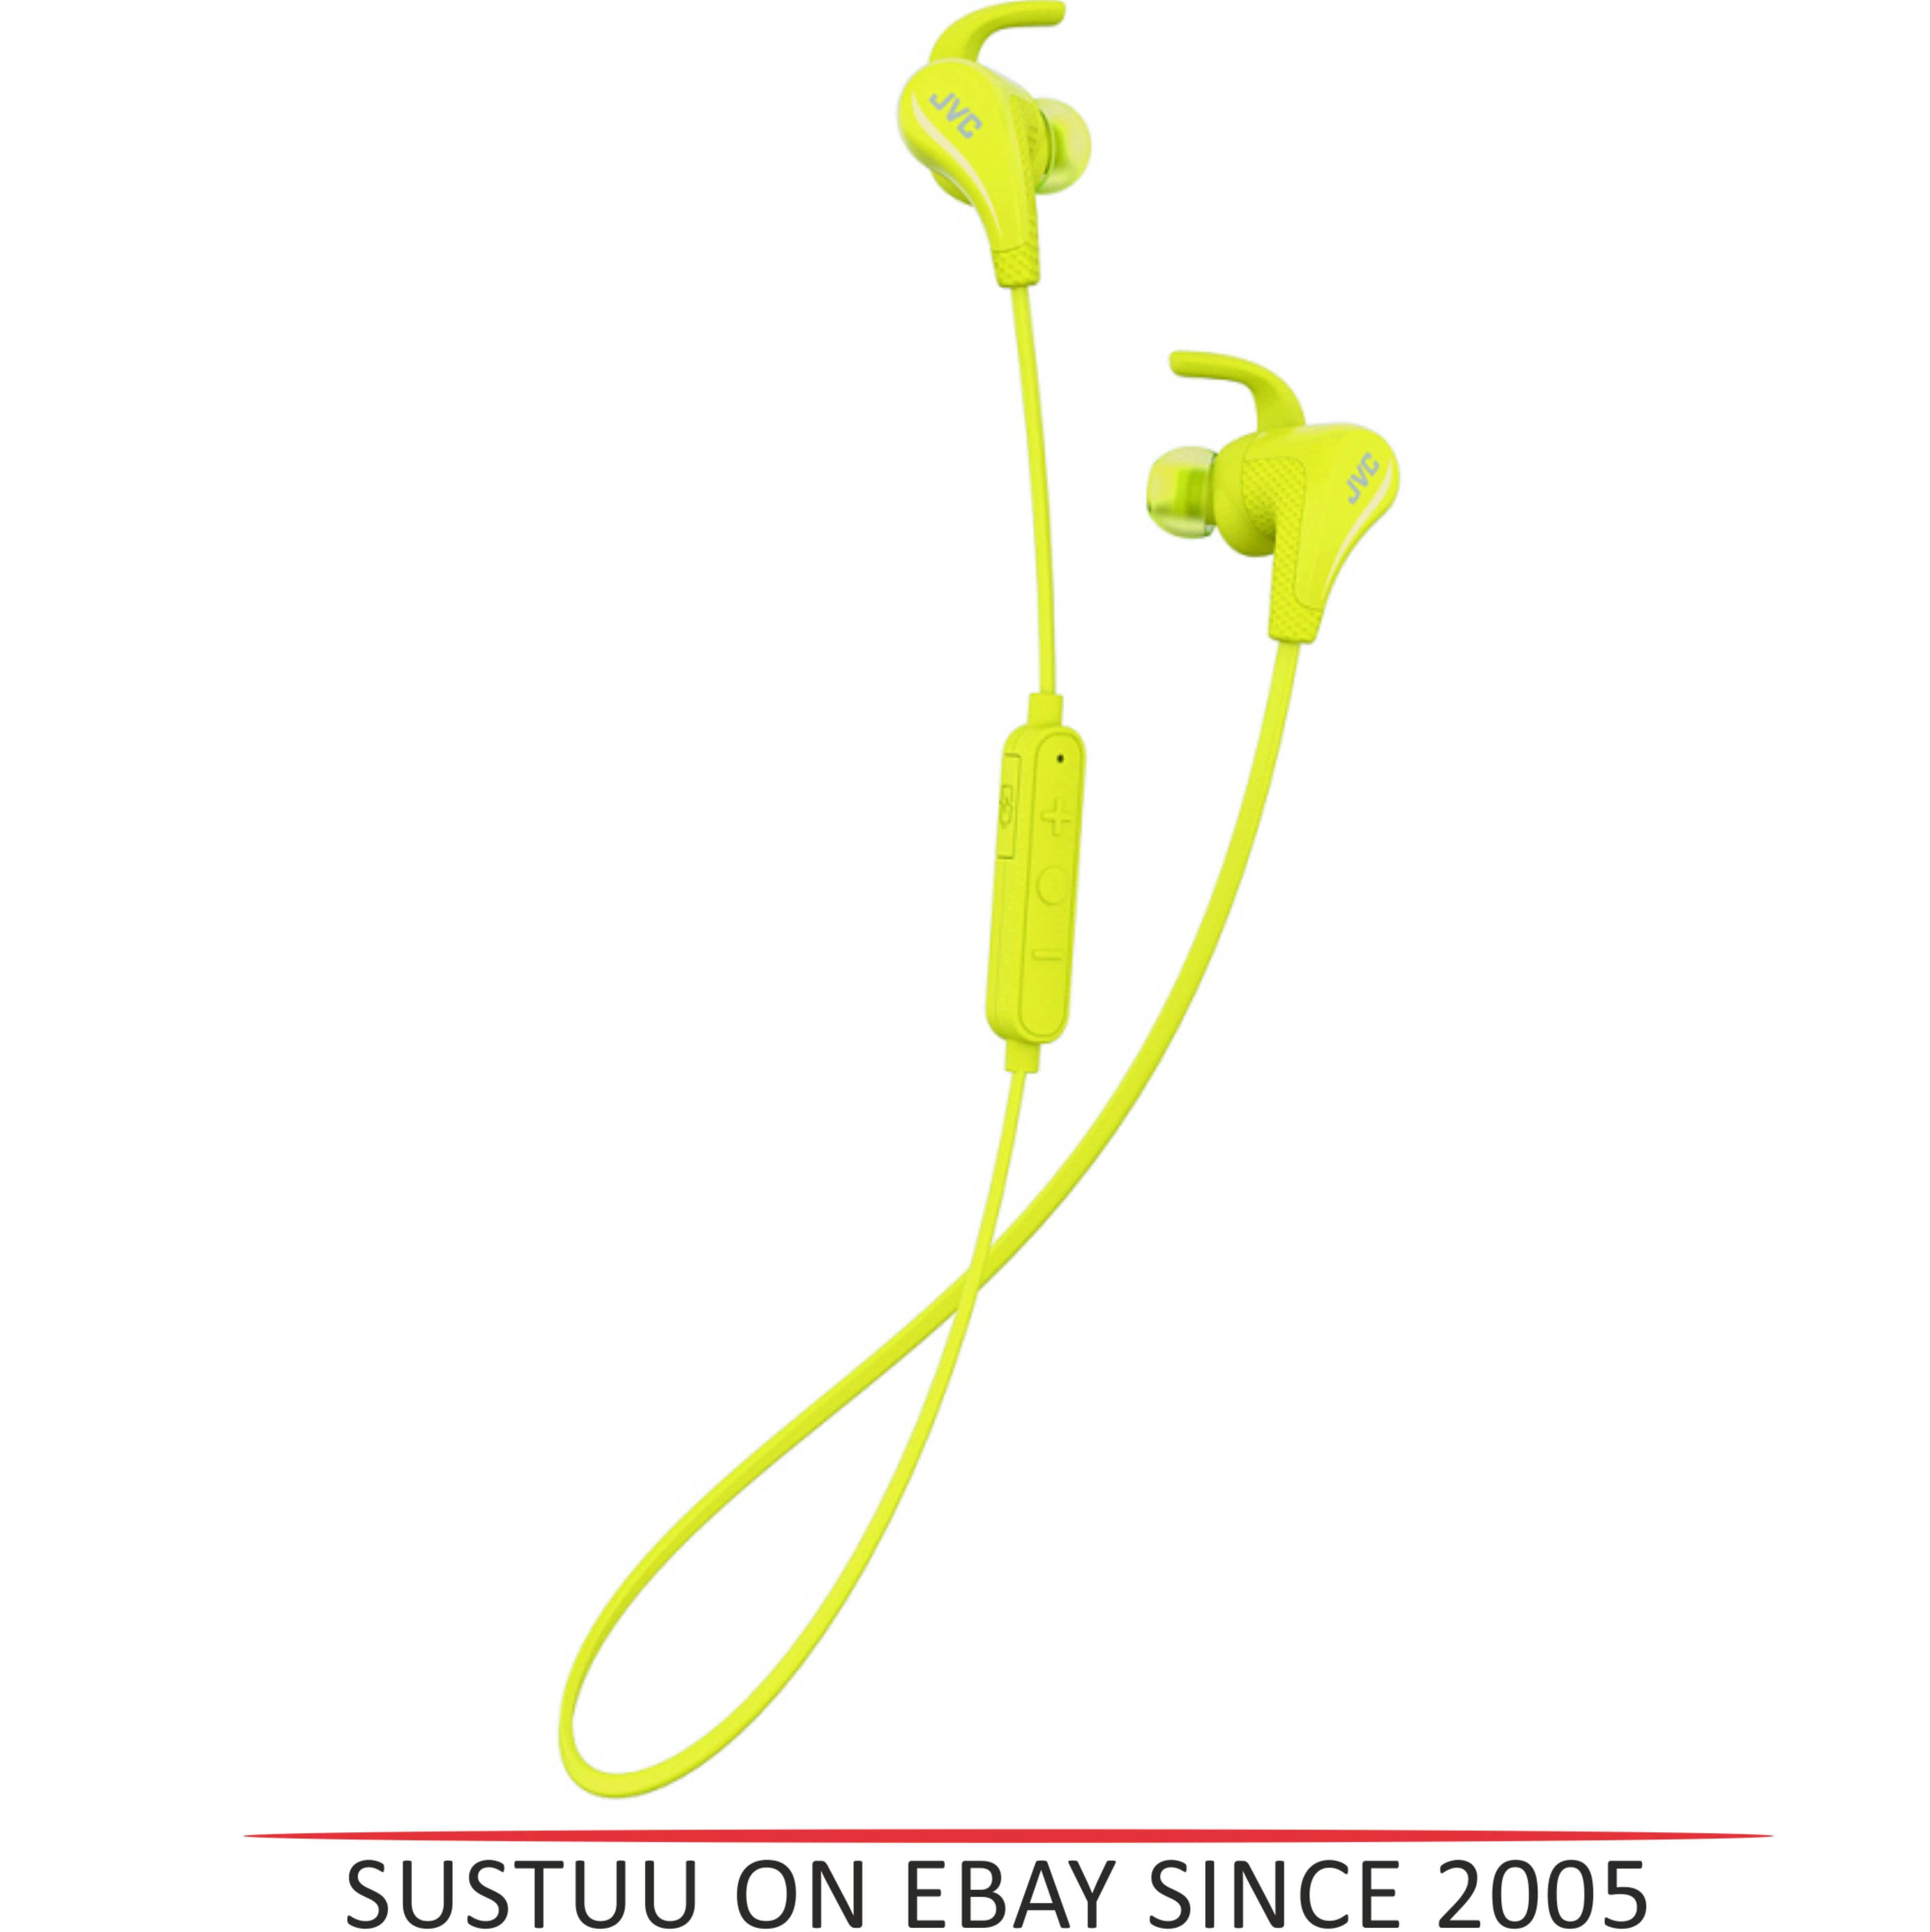 JVC HAET50BTY Wireless Bluetooth Sports Headphone With Pivot Motion Fit - Yellow